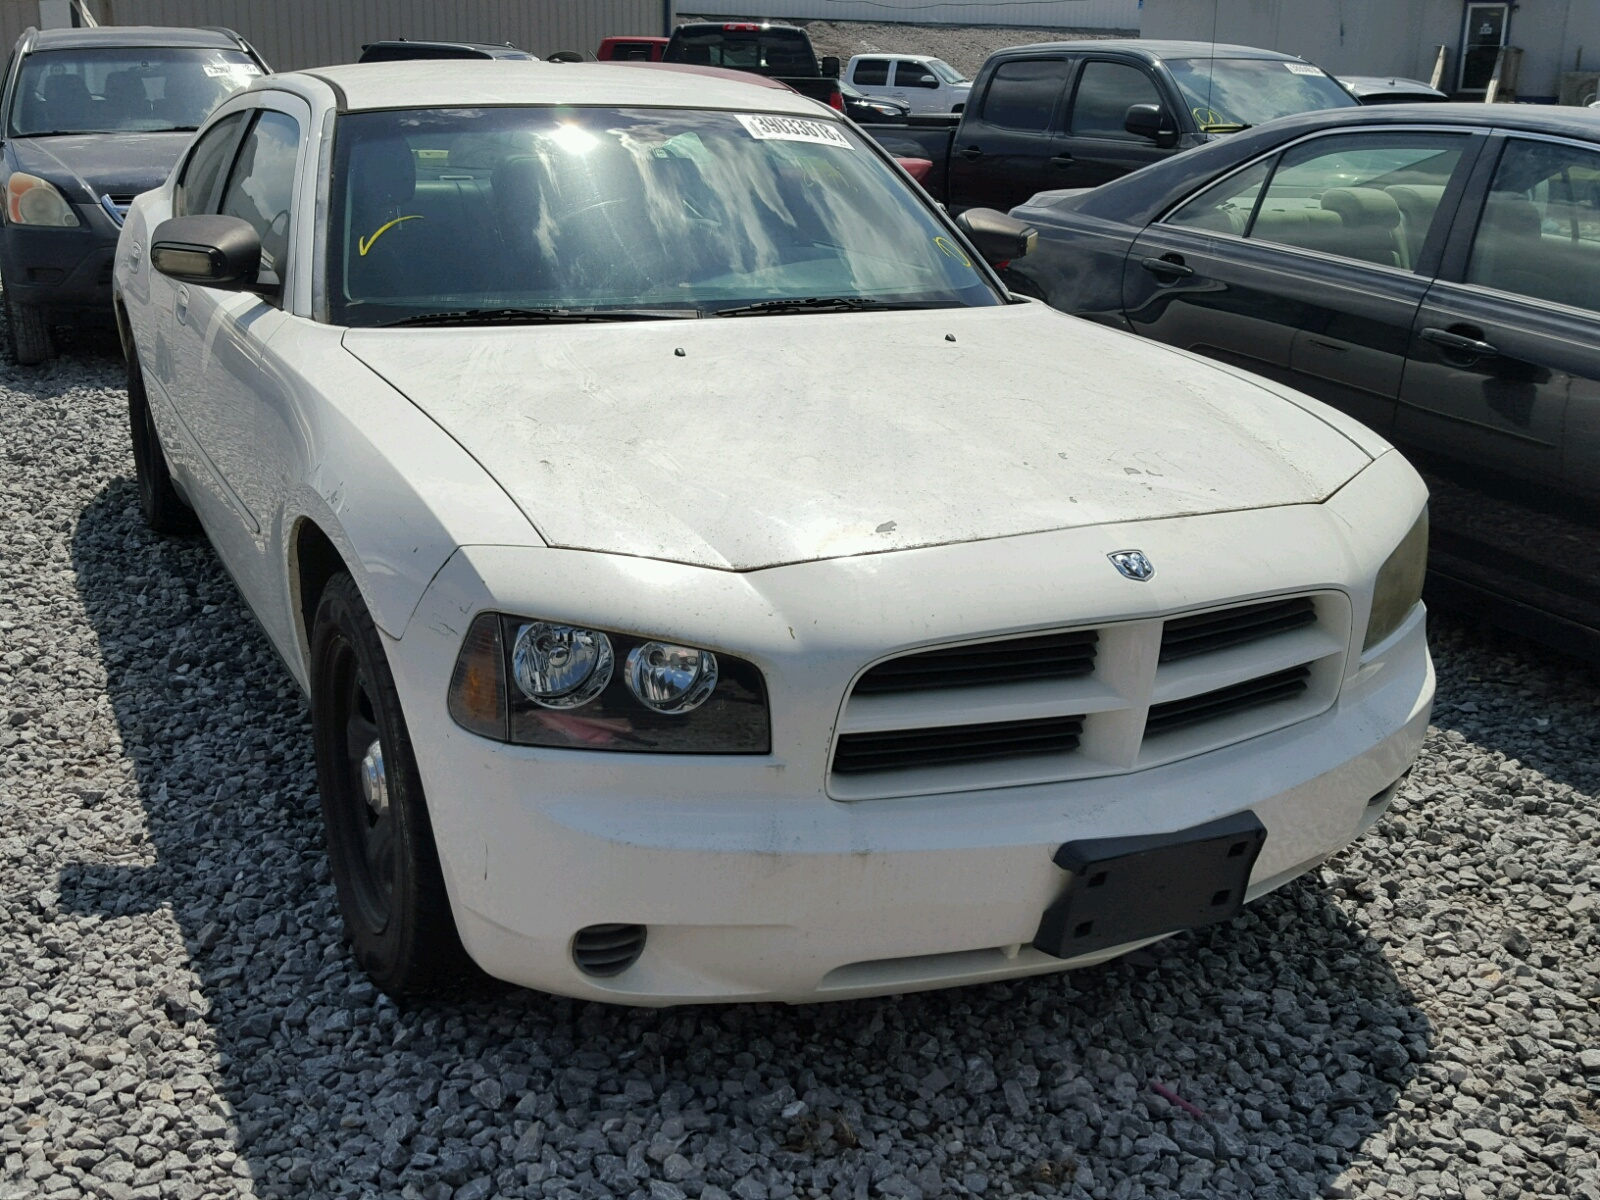 2007 Dodge Charger SE for sale at Copart Hueytown AL Lot